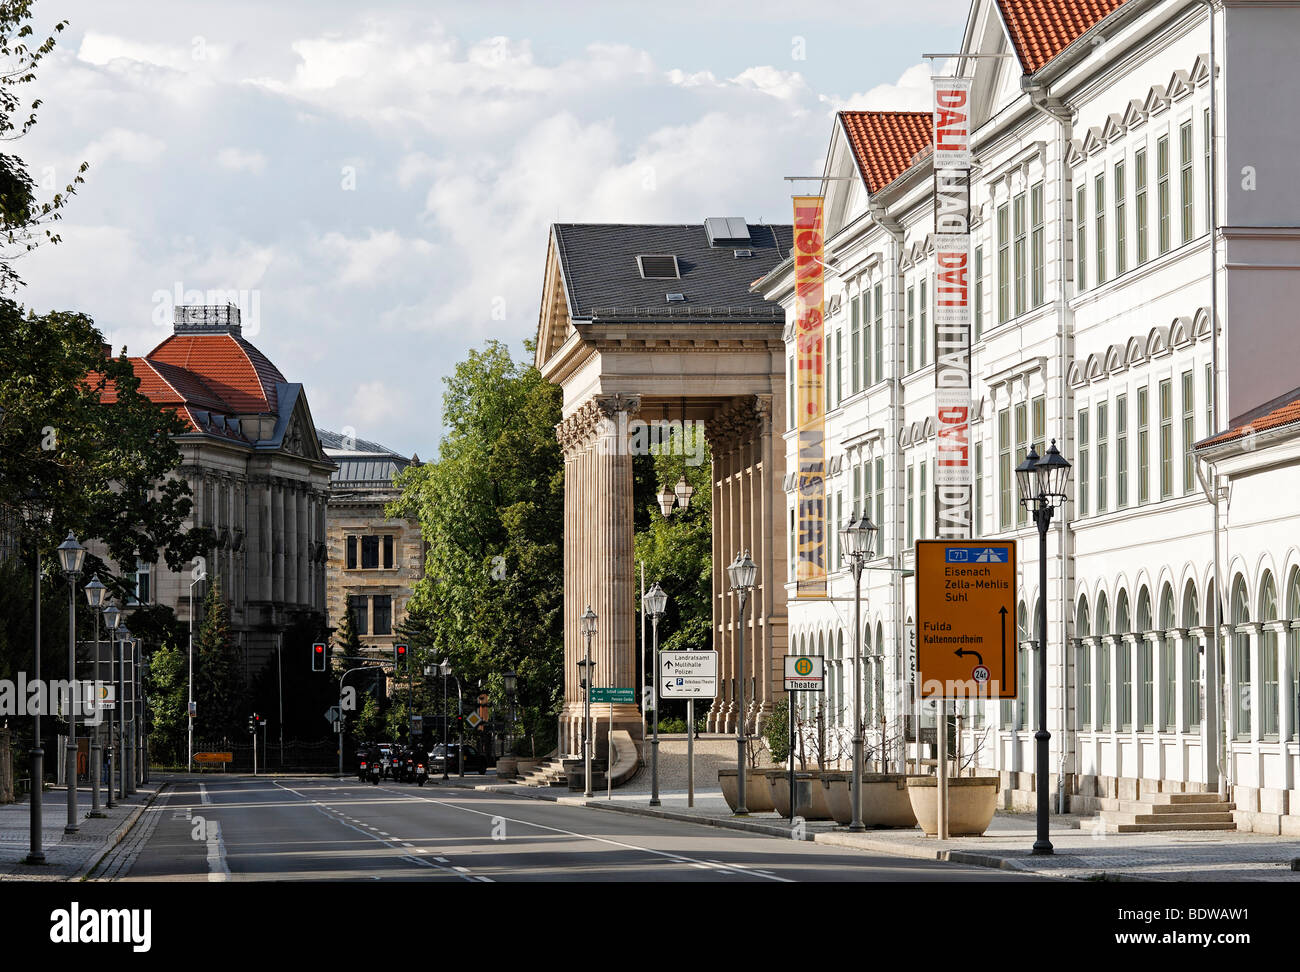 Bernhardstrasse street with theater and neoclassical buildings, Meiningen, Rhoen, Thuringia, Germany, Europe - Stock Image